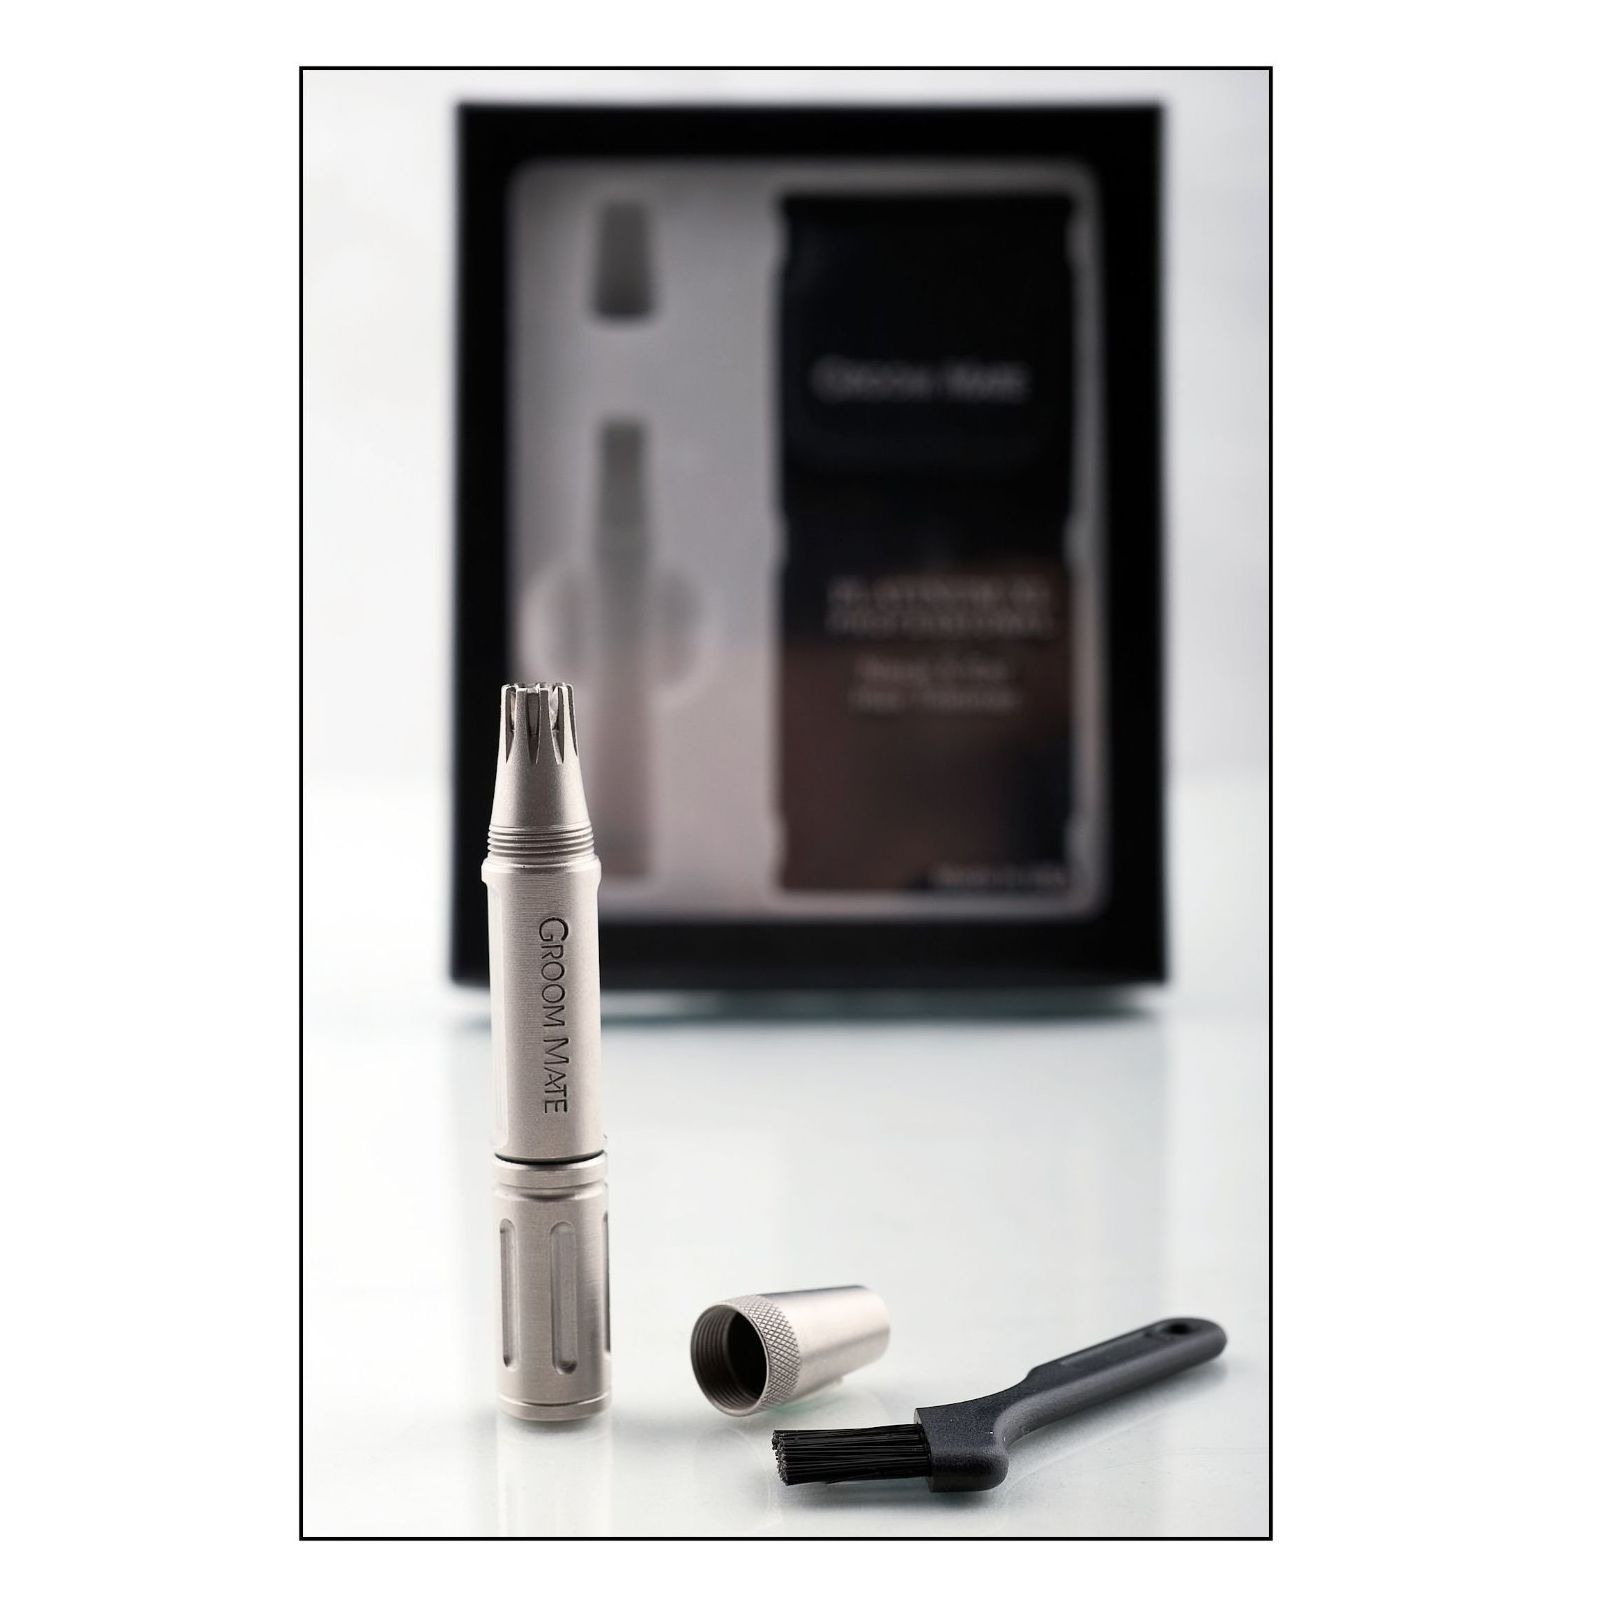 Groom Mate XL Ear and Nose Hair Trimmer